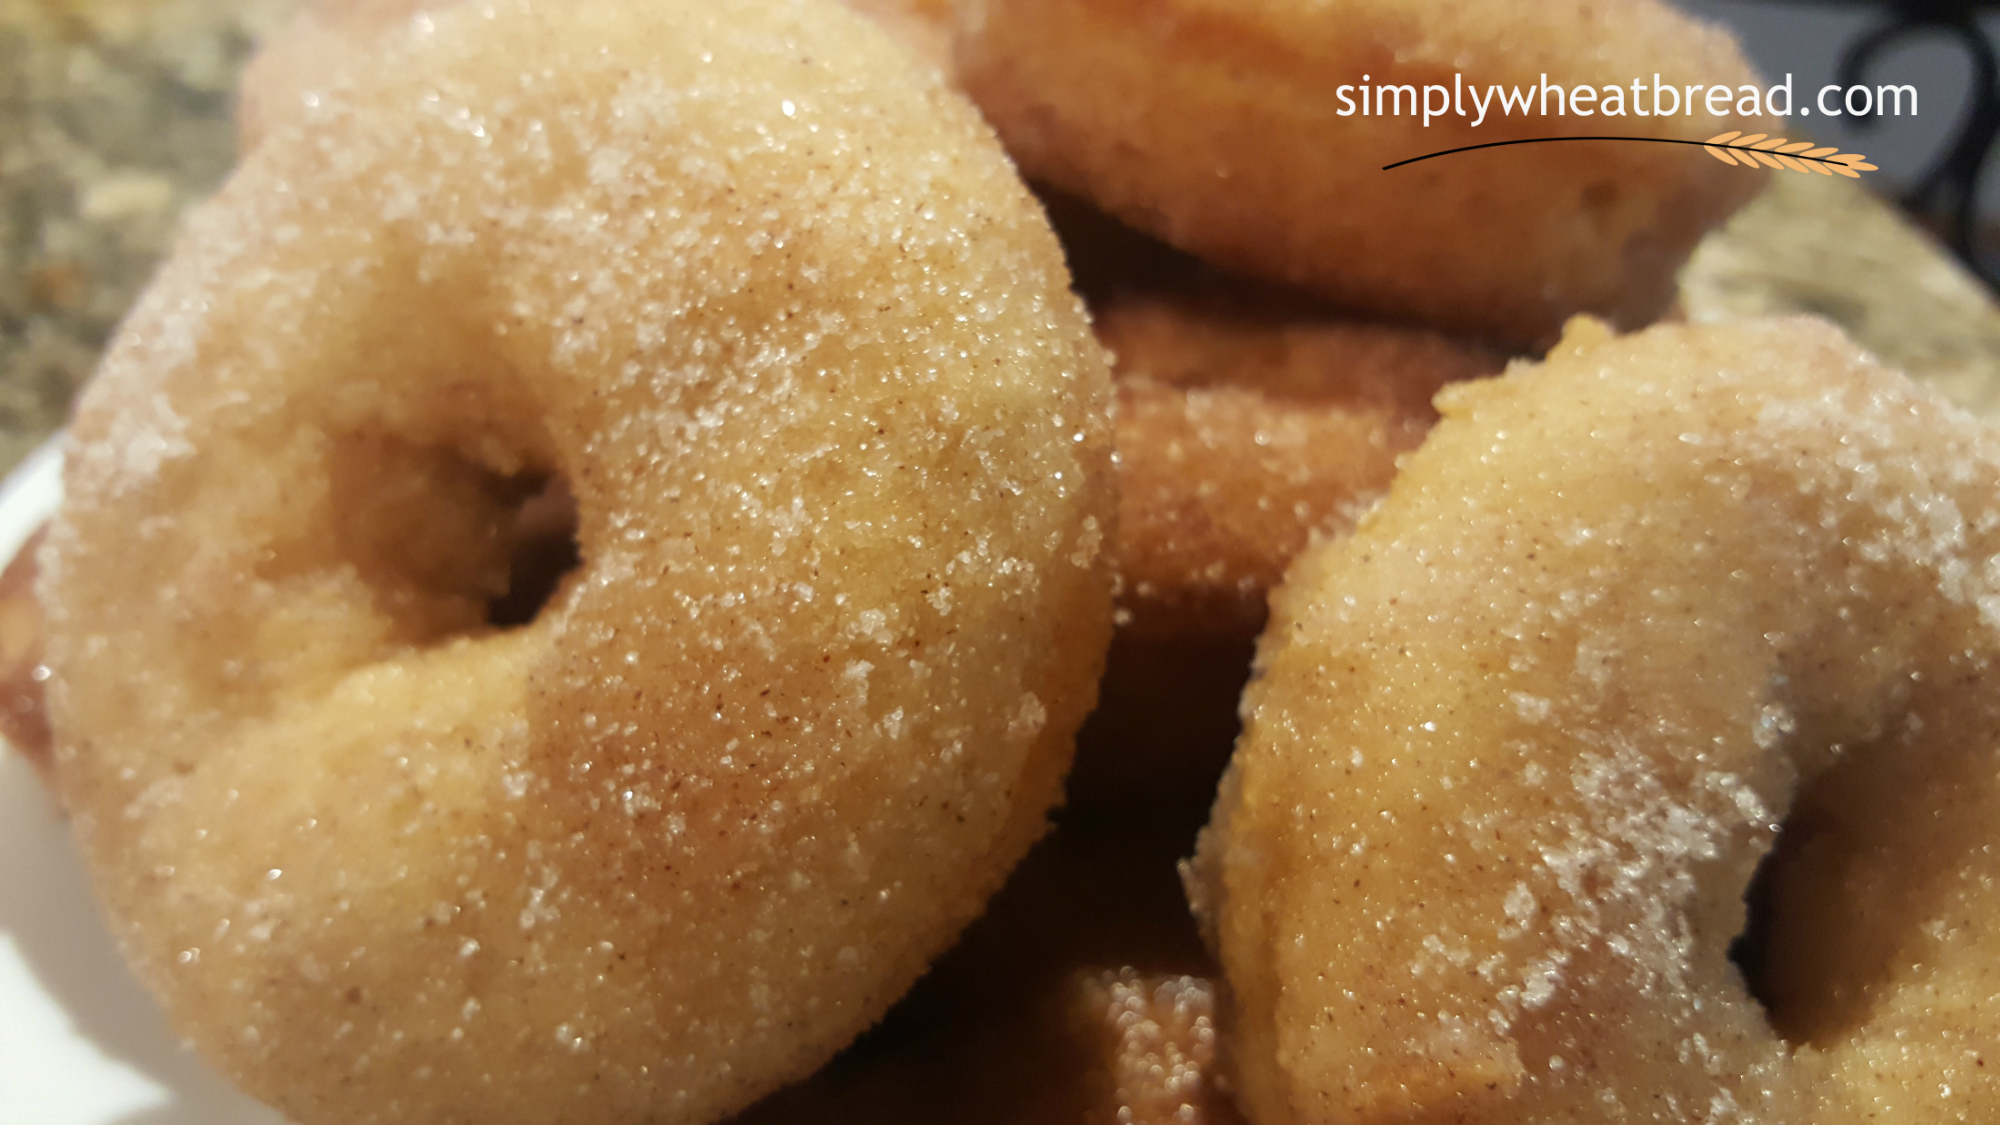 Mouth-Watering 100% Whole Wheat Baked Donuts Dipped in Cinnamon-Sugar Mixture